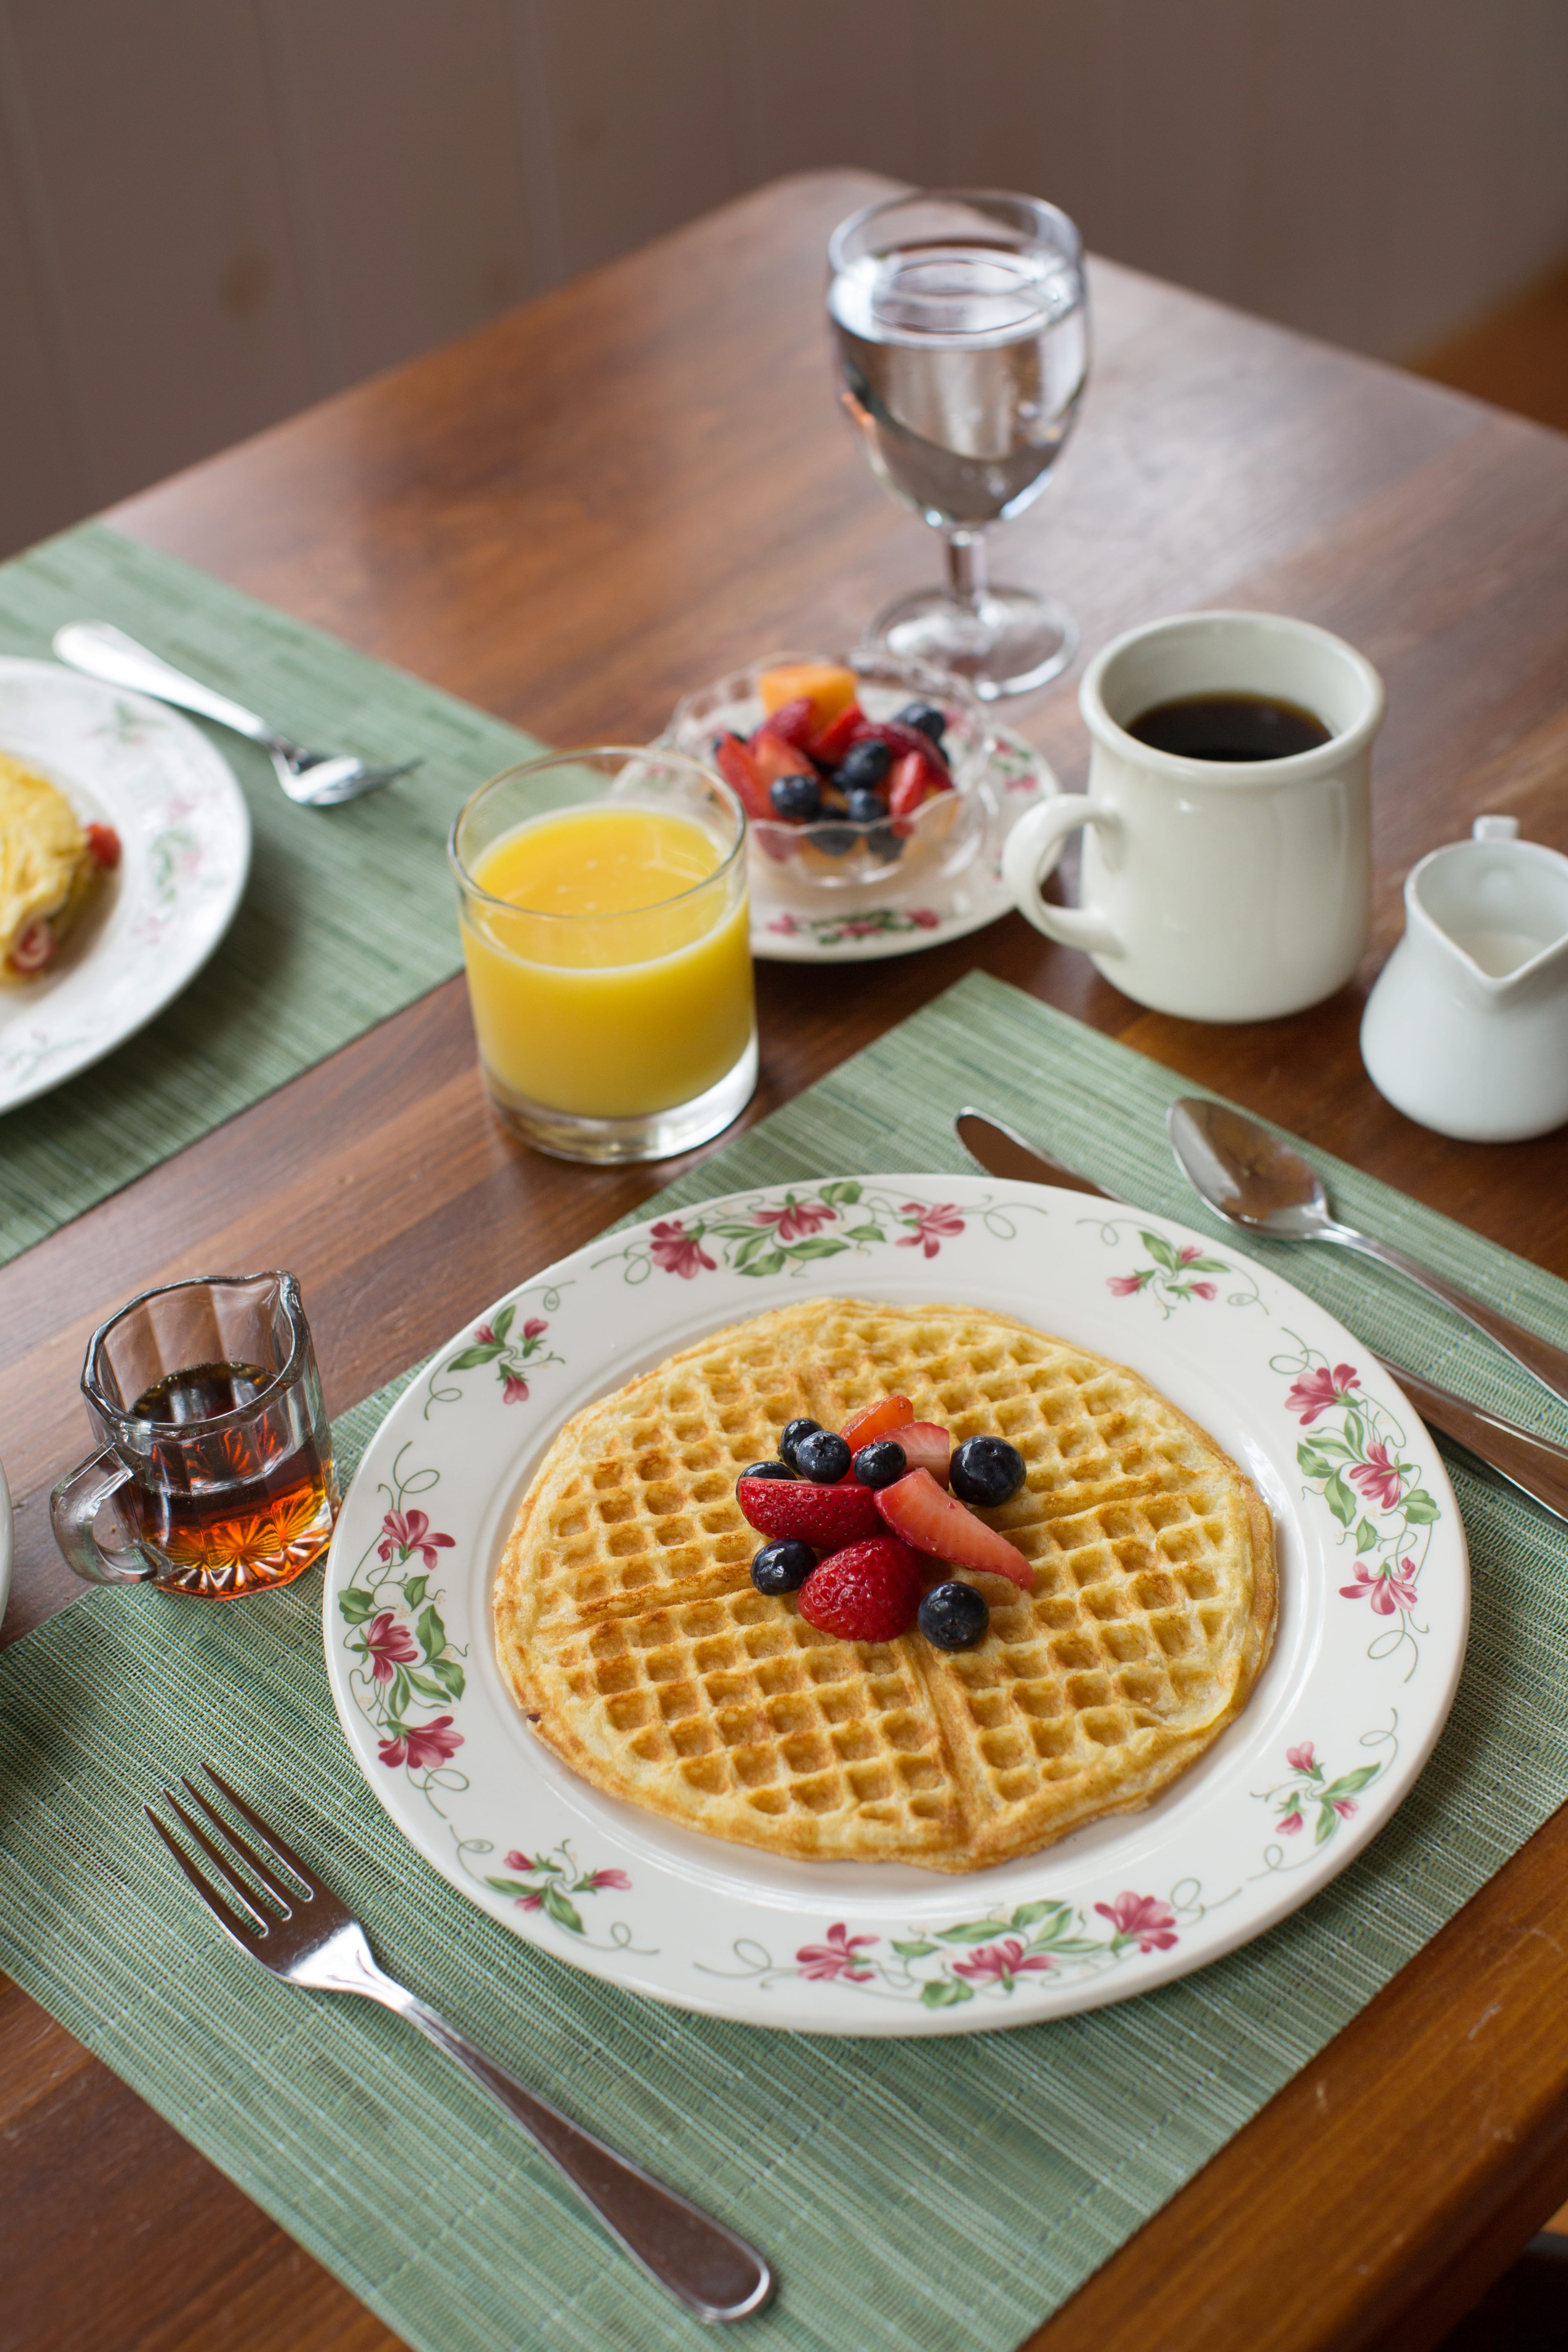 Image of breakfast meal with waffle and coffee